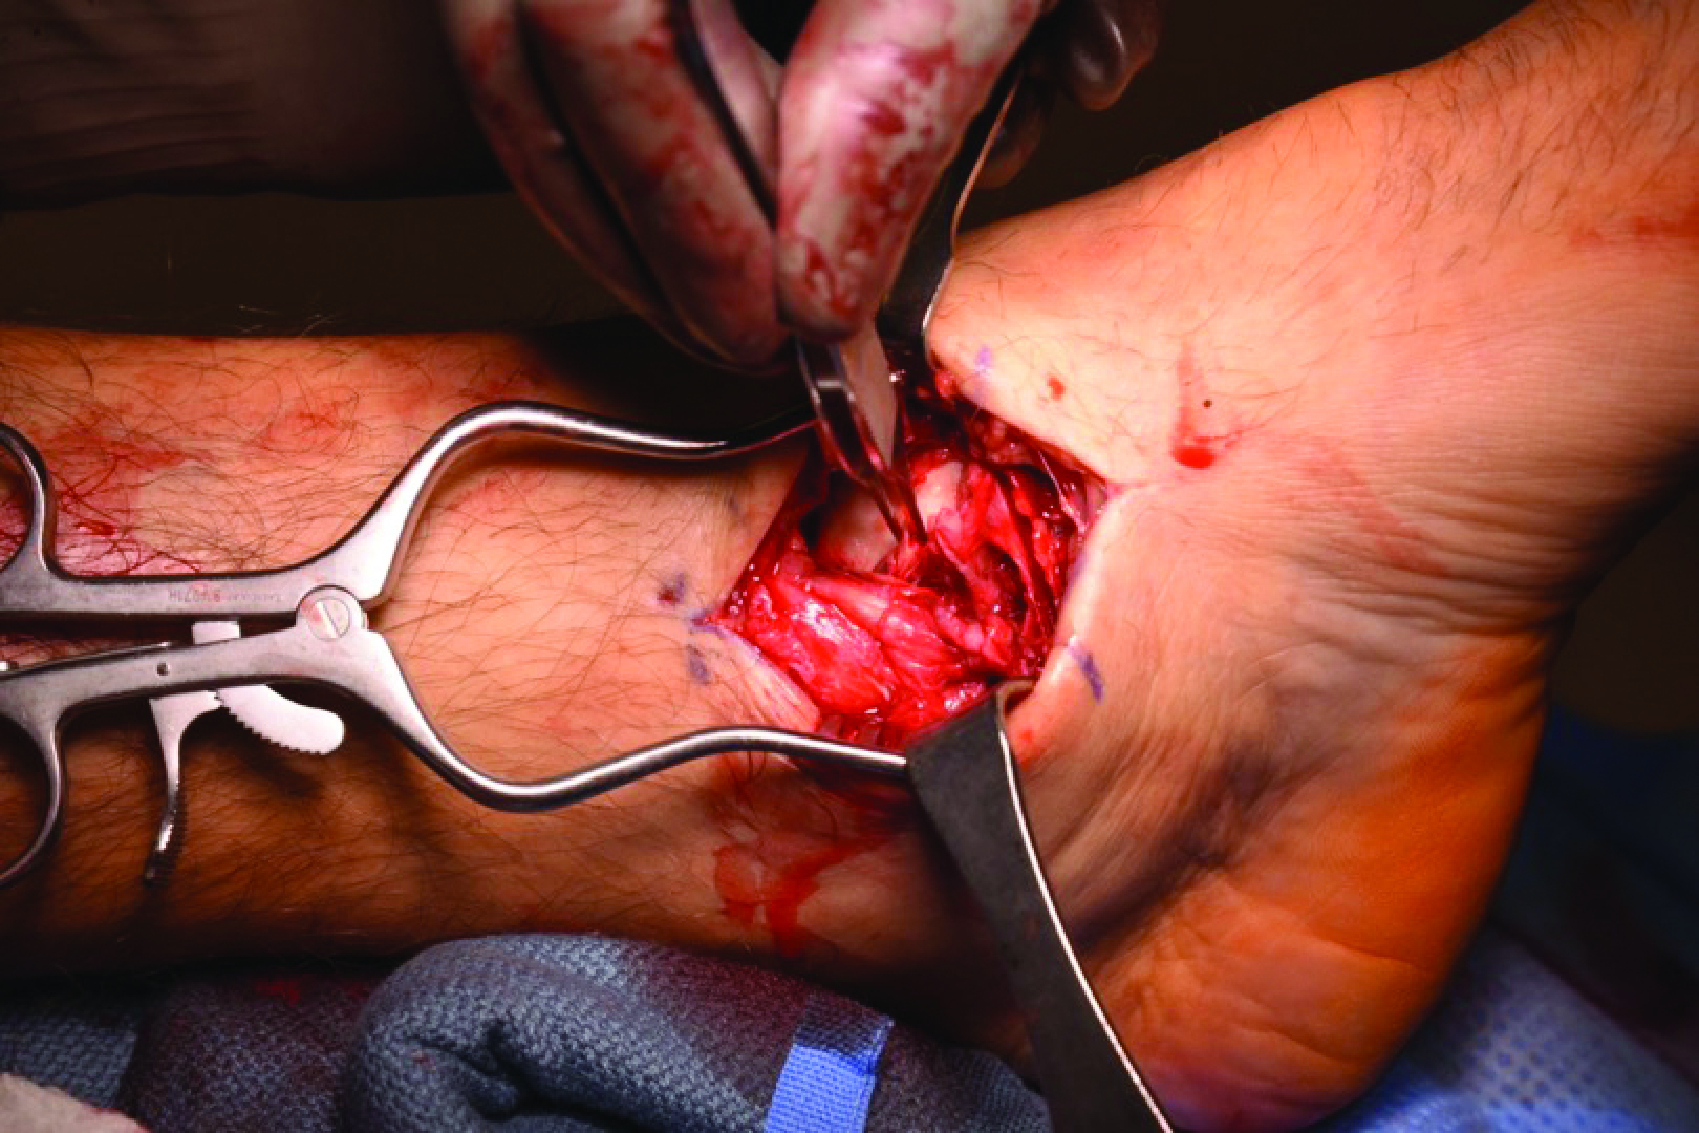 Deltoid ligament avulsion or rupture is not uncommon in traumatic cases.